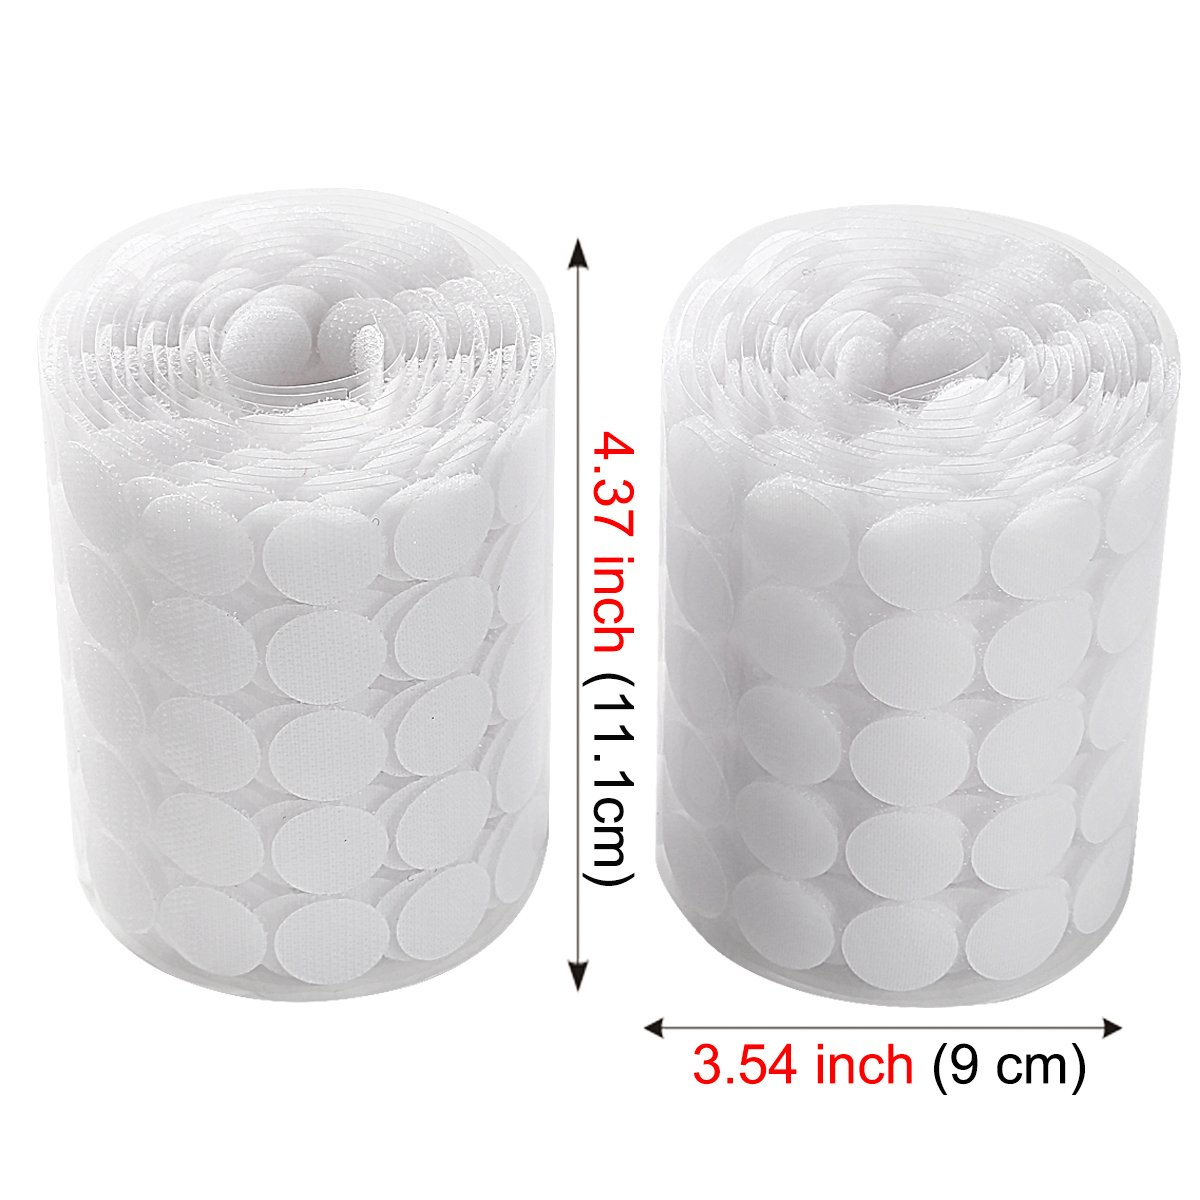 Sticky Back Coins Clear Dots Hook and Loop Self Adhesive Dot Tapes 3/4'' Diameter 1000pcs(500 Pair) - White by Alldio (Image #3)